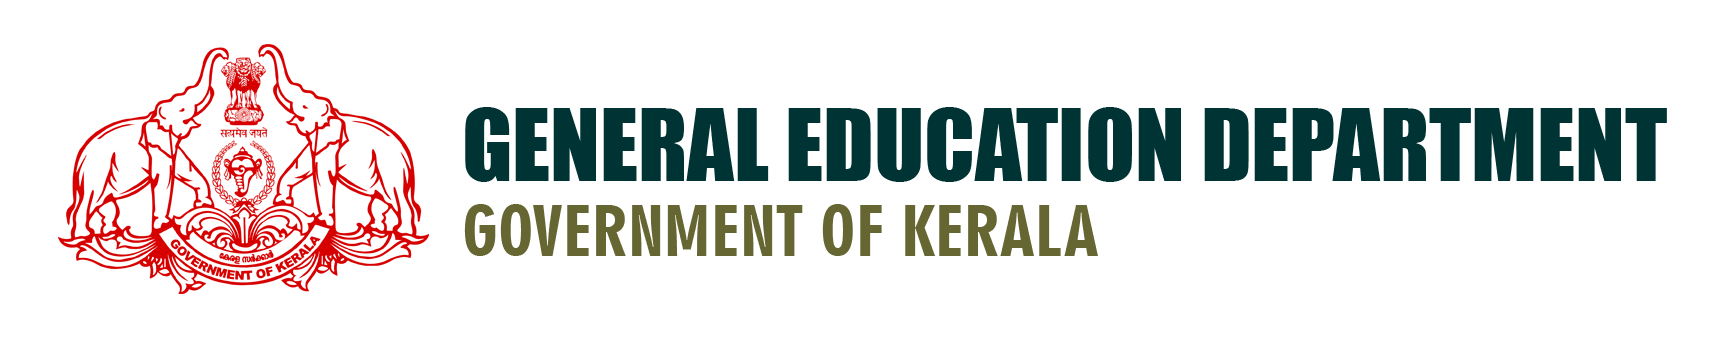 General Education Department